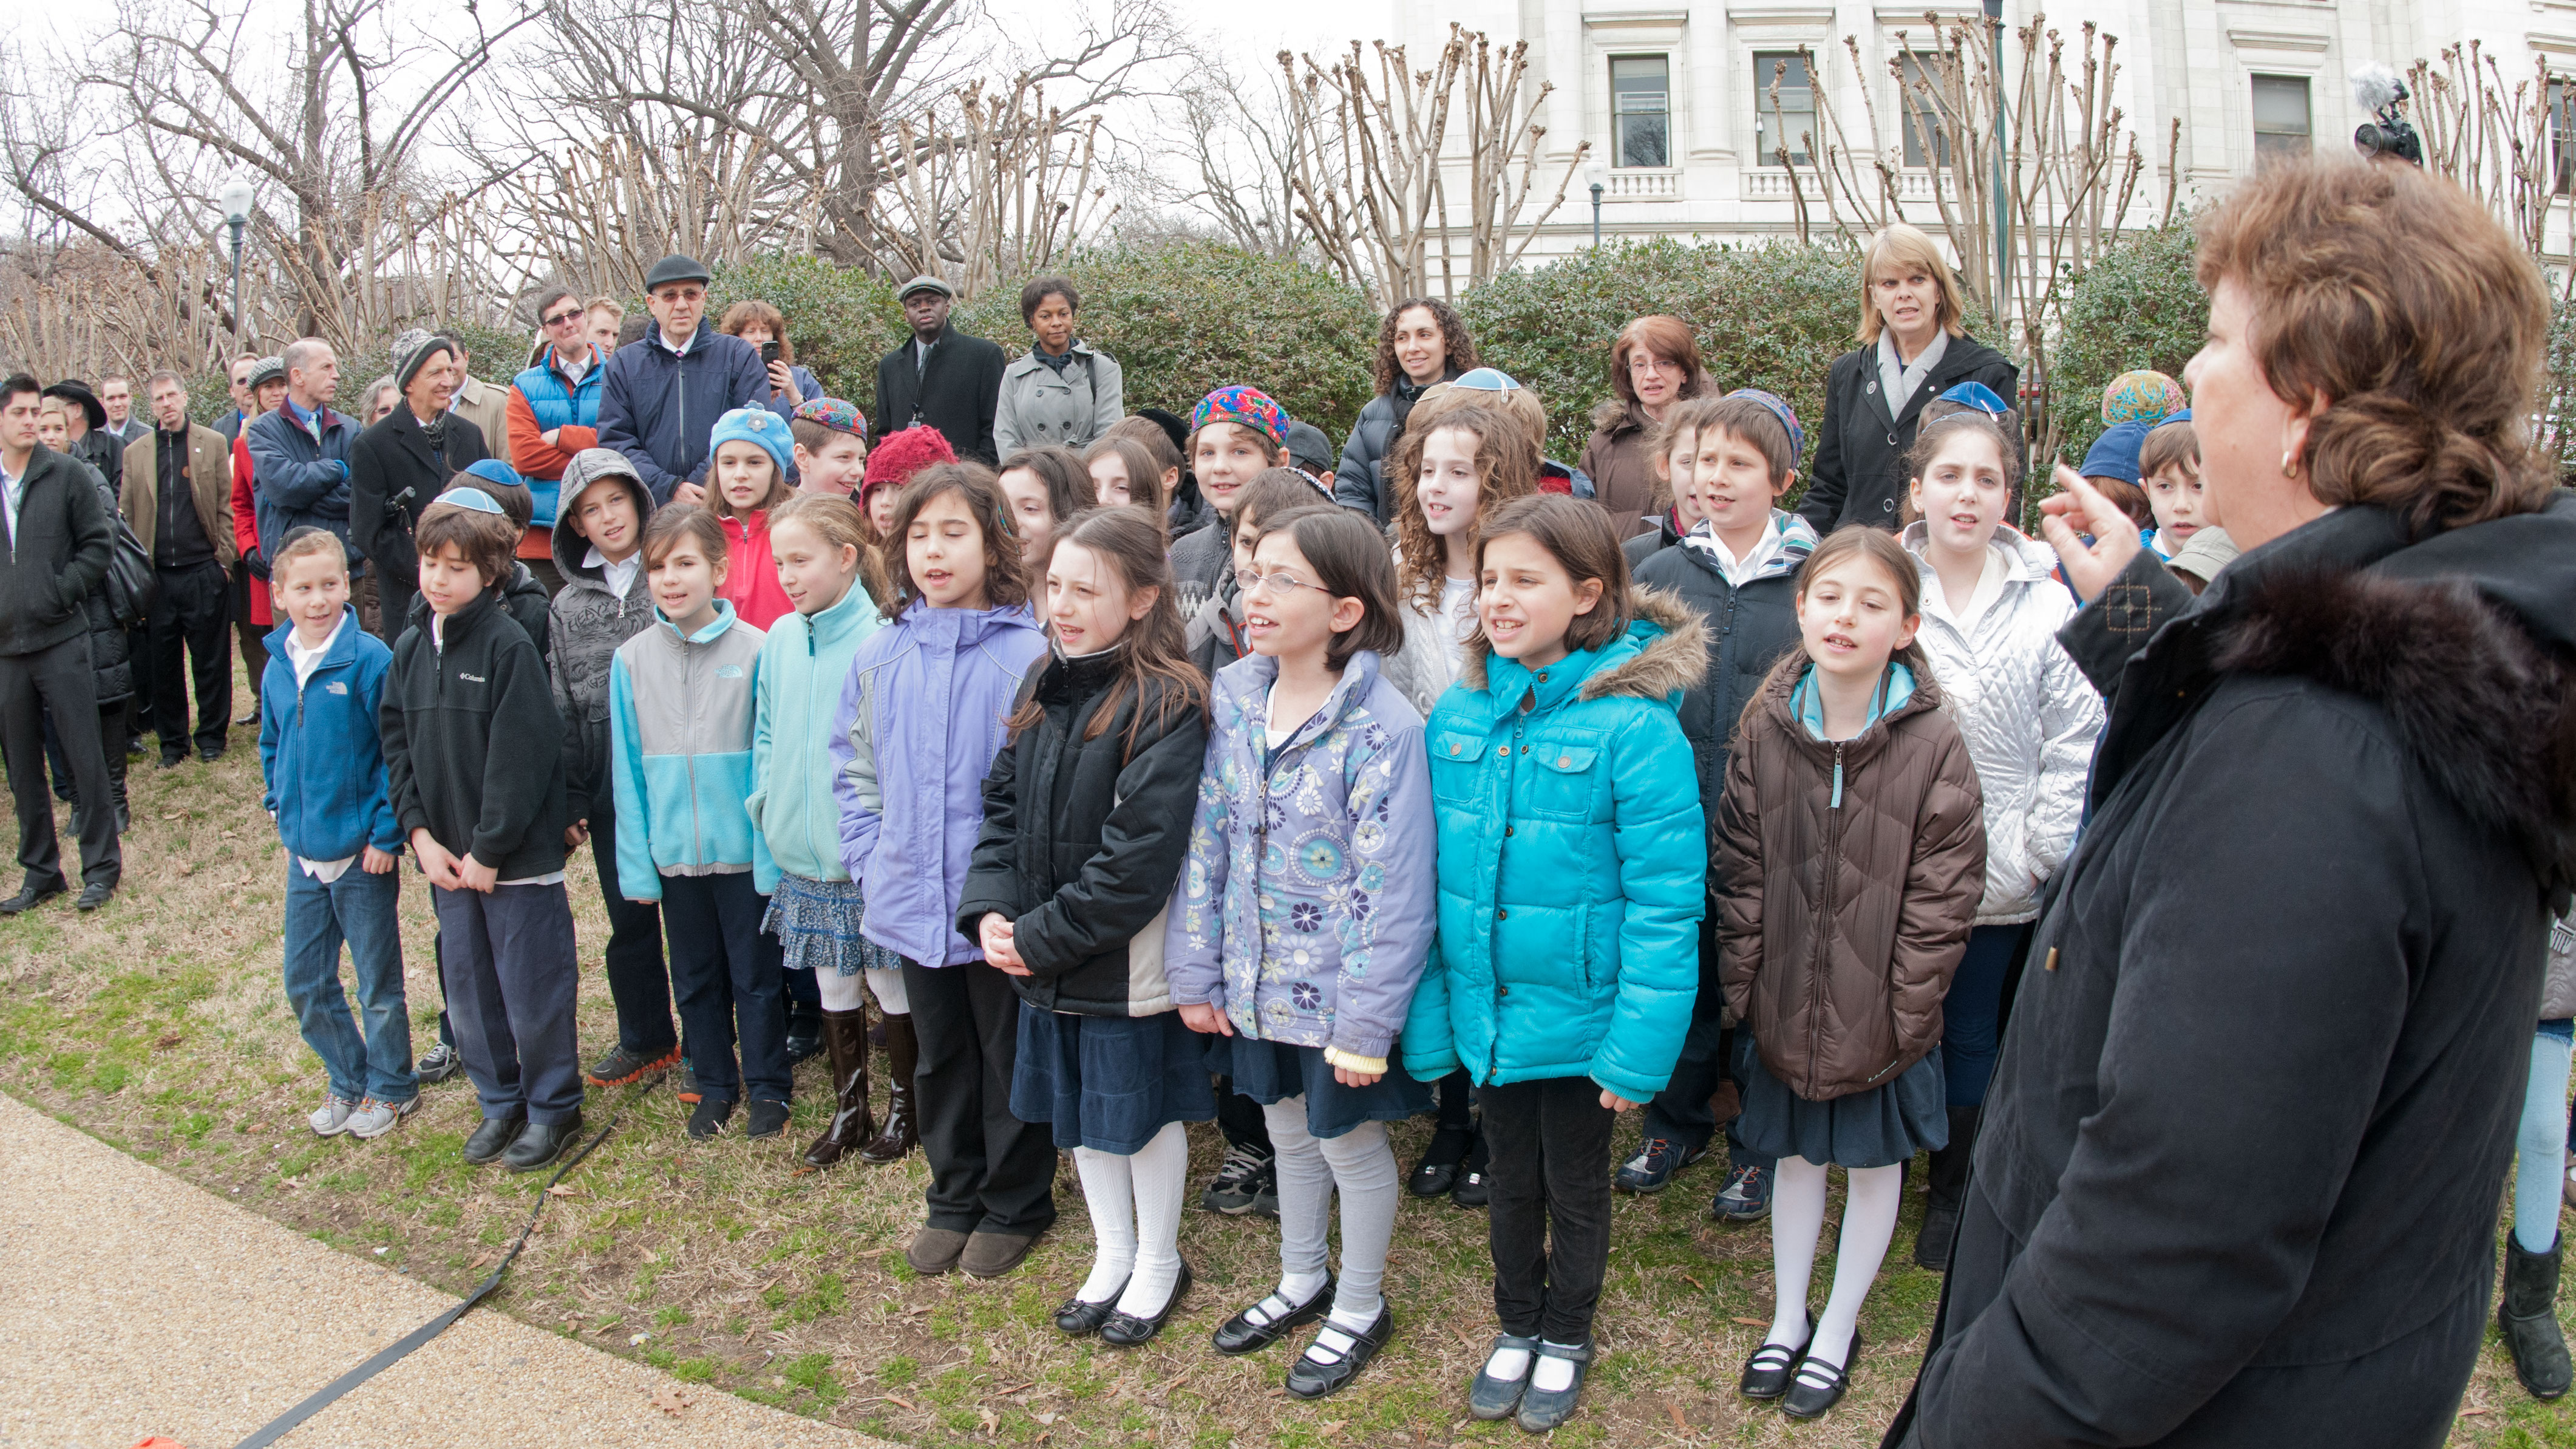 3rd Grade Class of the Jewish Primary Day School of the Nation's Capitol singduring the Celebration of Tu B'Shevat